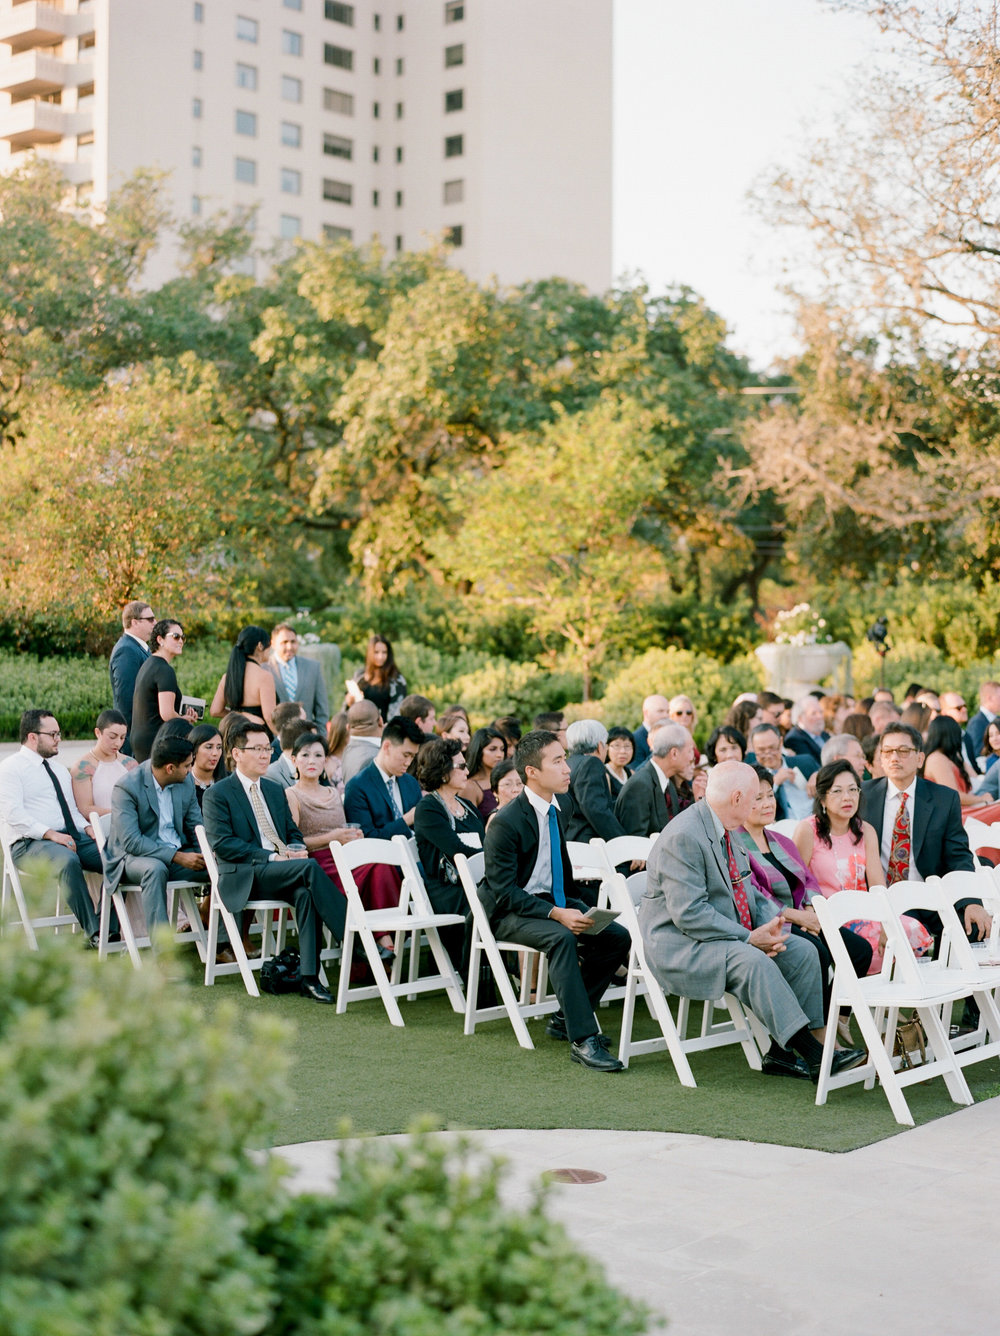 Martha-Stewart-Wedding-Dana-Fernandez-Photography-Josh-Texas-Film-Houston-Wedding-Fine-Art-Photographer-McGovern-Centennial-Gardens-Top-Best-126.jpg